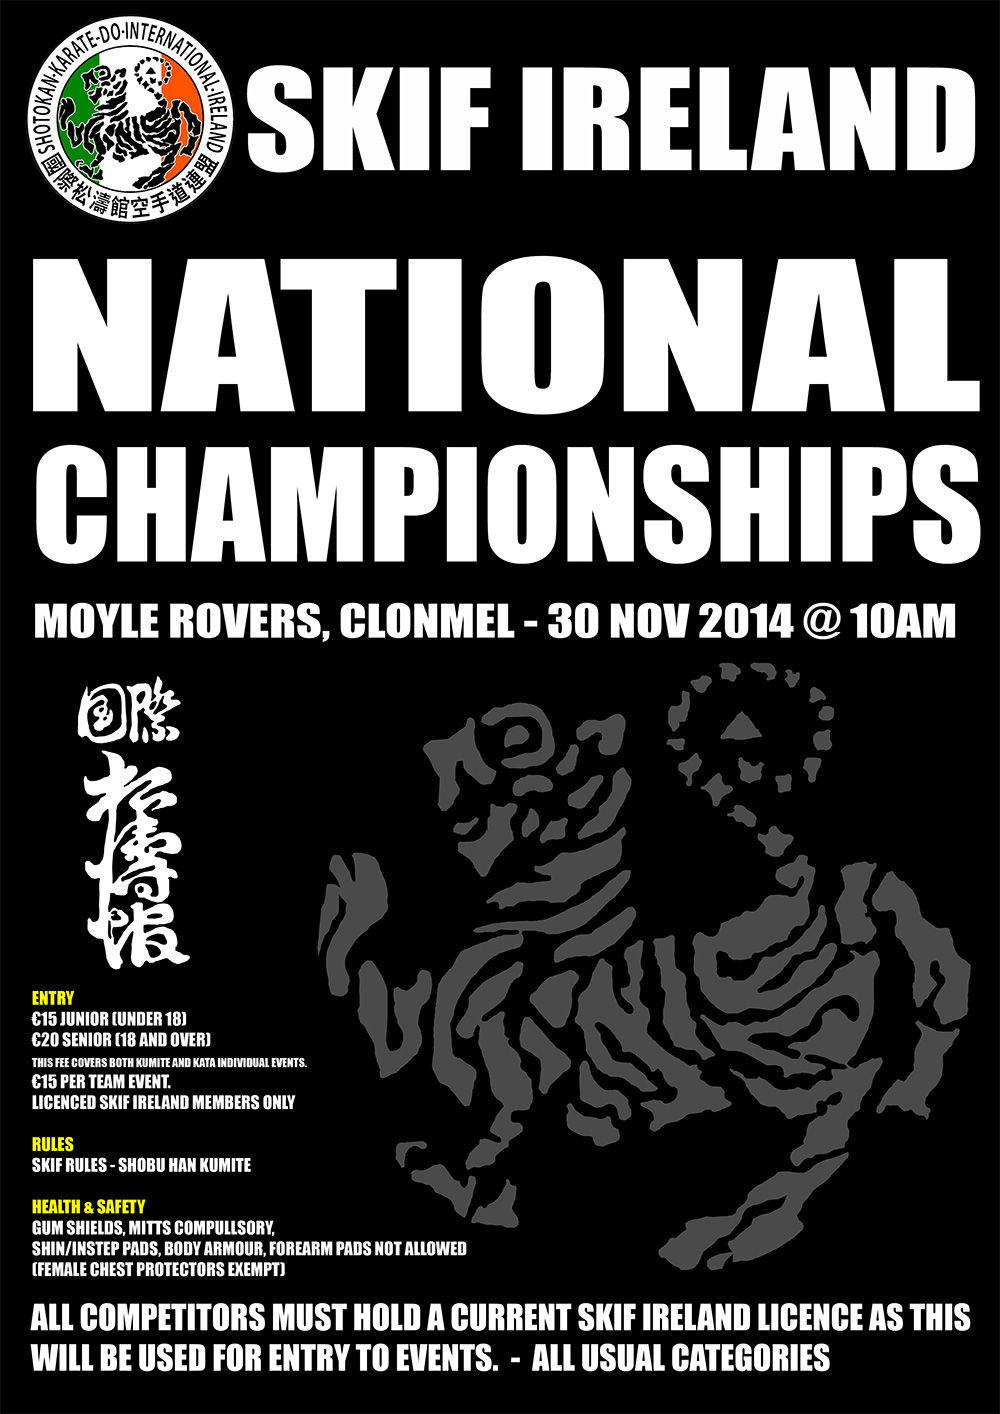 The SKIF Ireland National Championships 2014 will take place in Moyle Rovers GAA on November 30th 2014